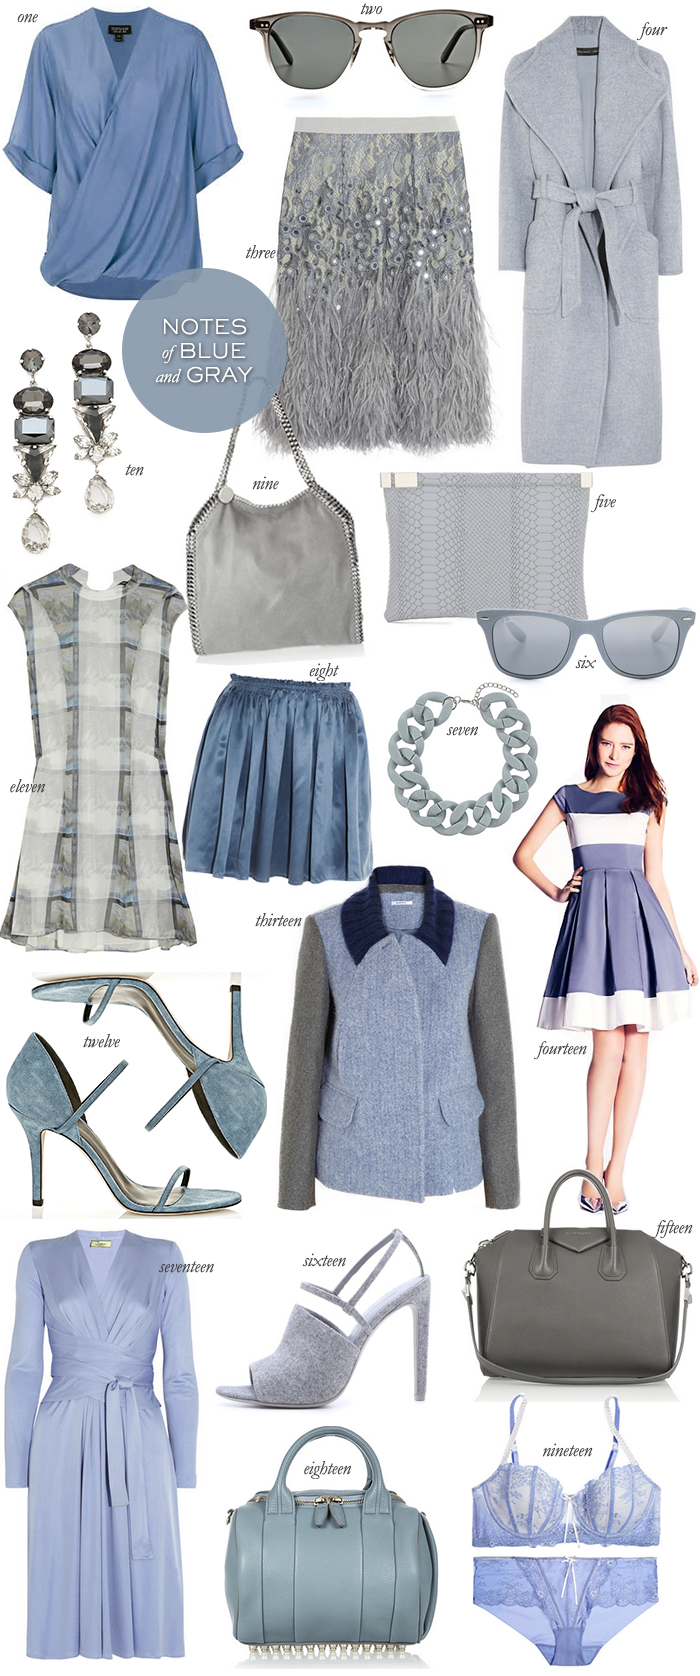 Notes of Blue and Gray | The Style Scribe